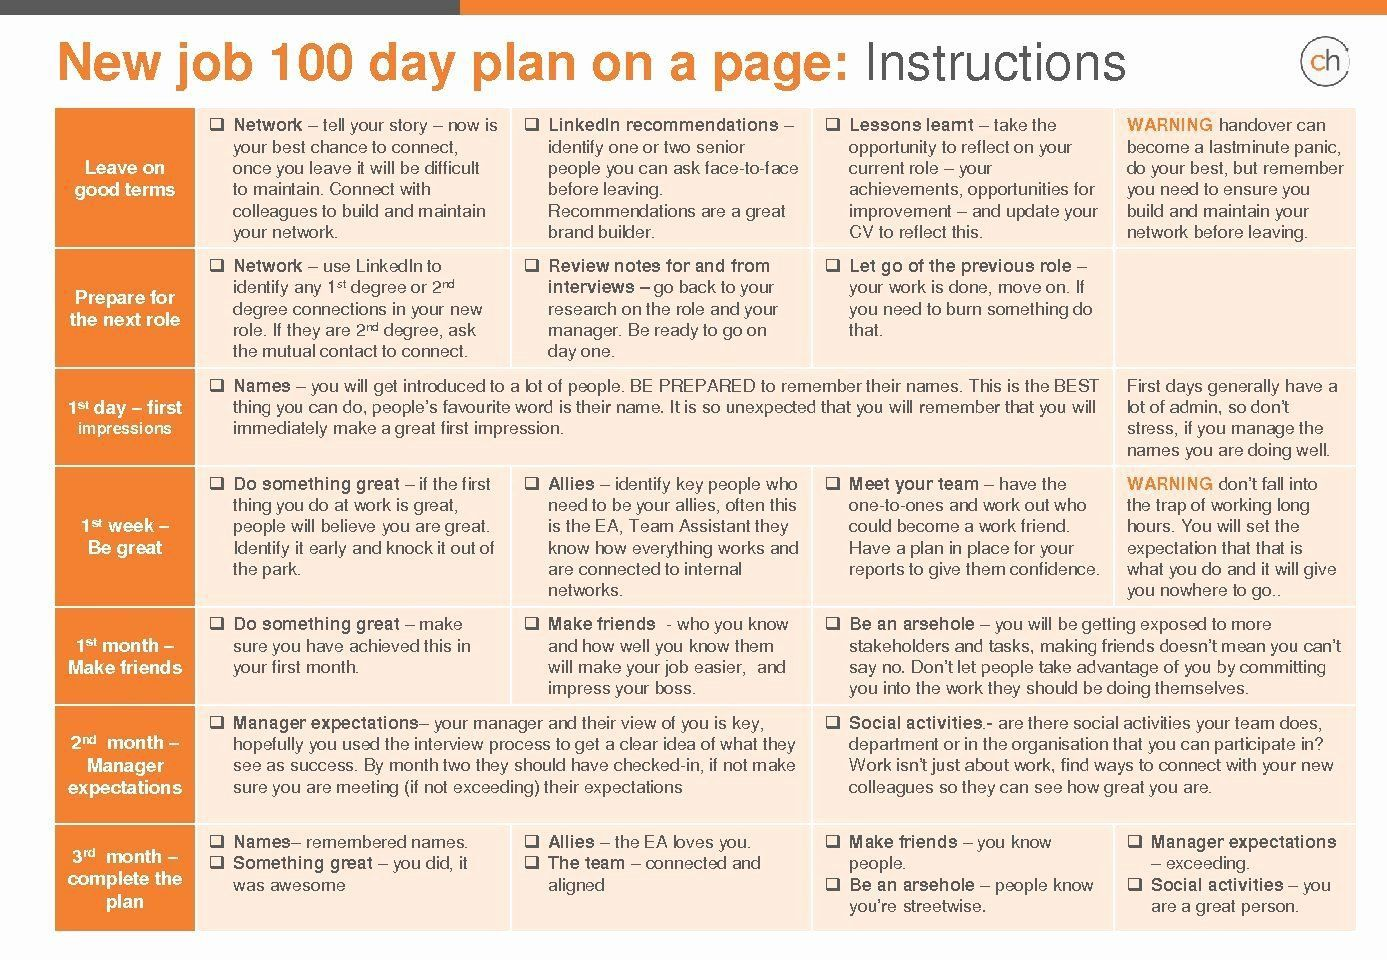 006 Awesome 100 Day Planning Template Photo  Plan Powerpoint Free New Job ExampleFull